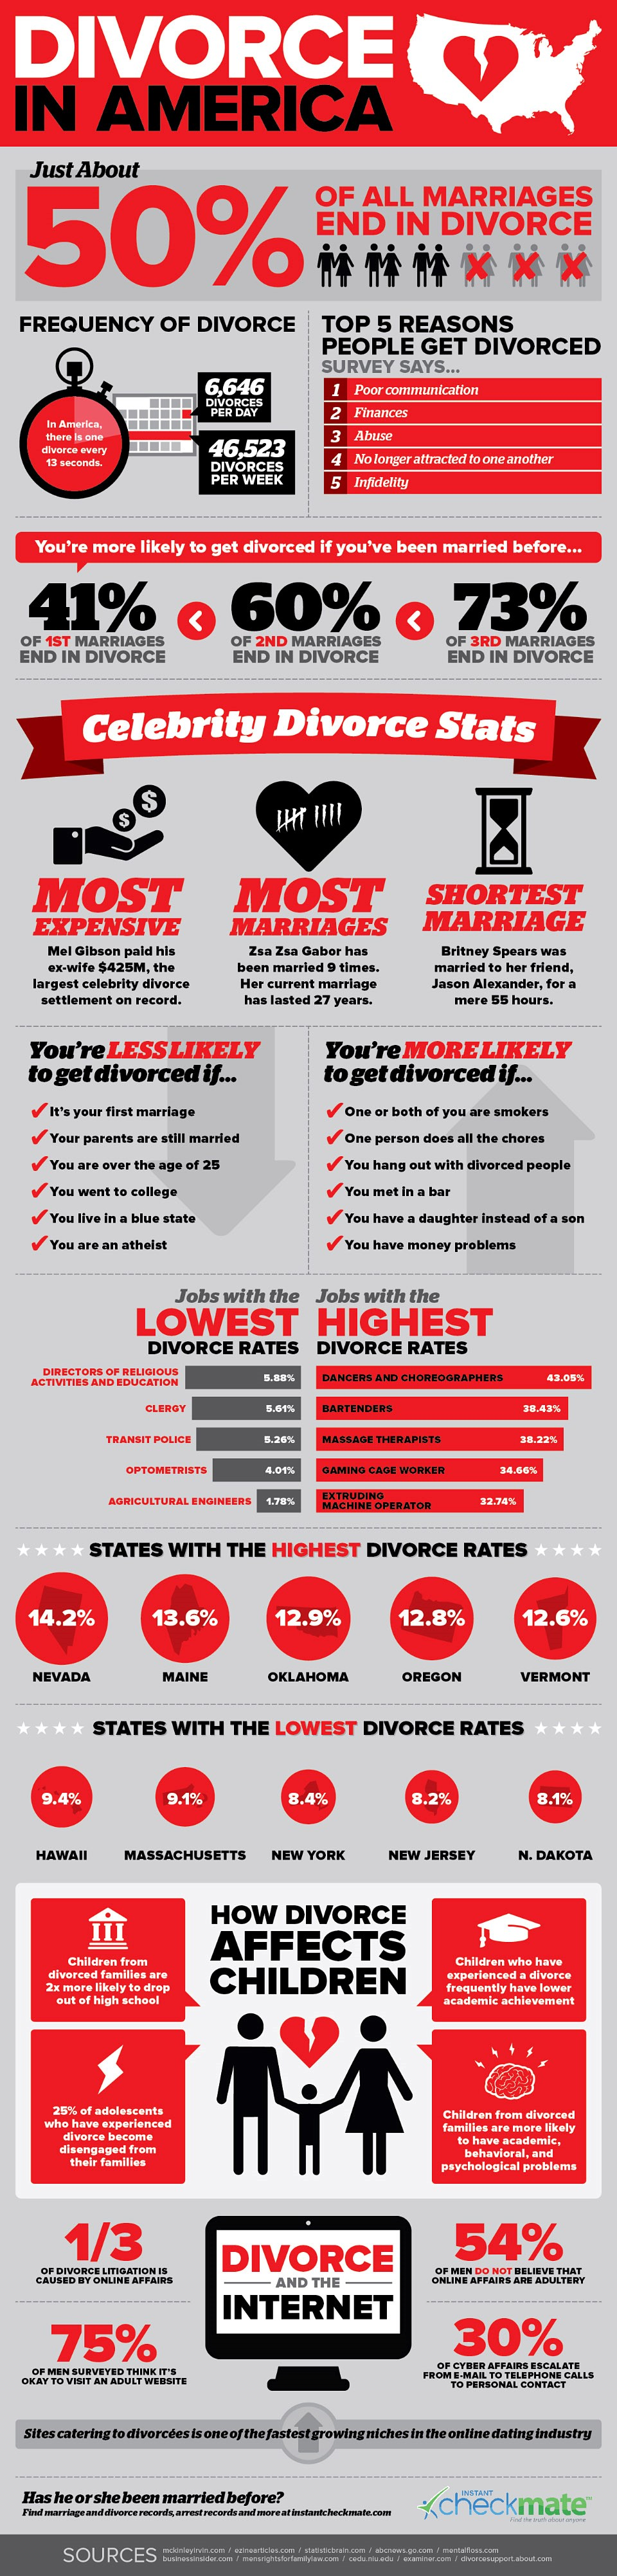 divorce usa figures infographic law legal mediation separation statistics data | The Family Law Company solicitors exeter plymouth